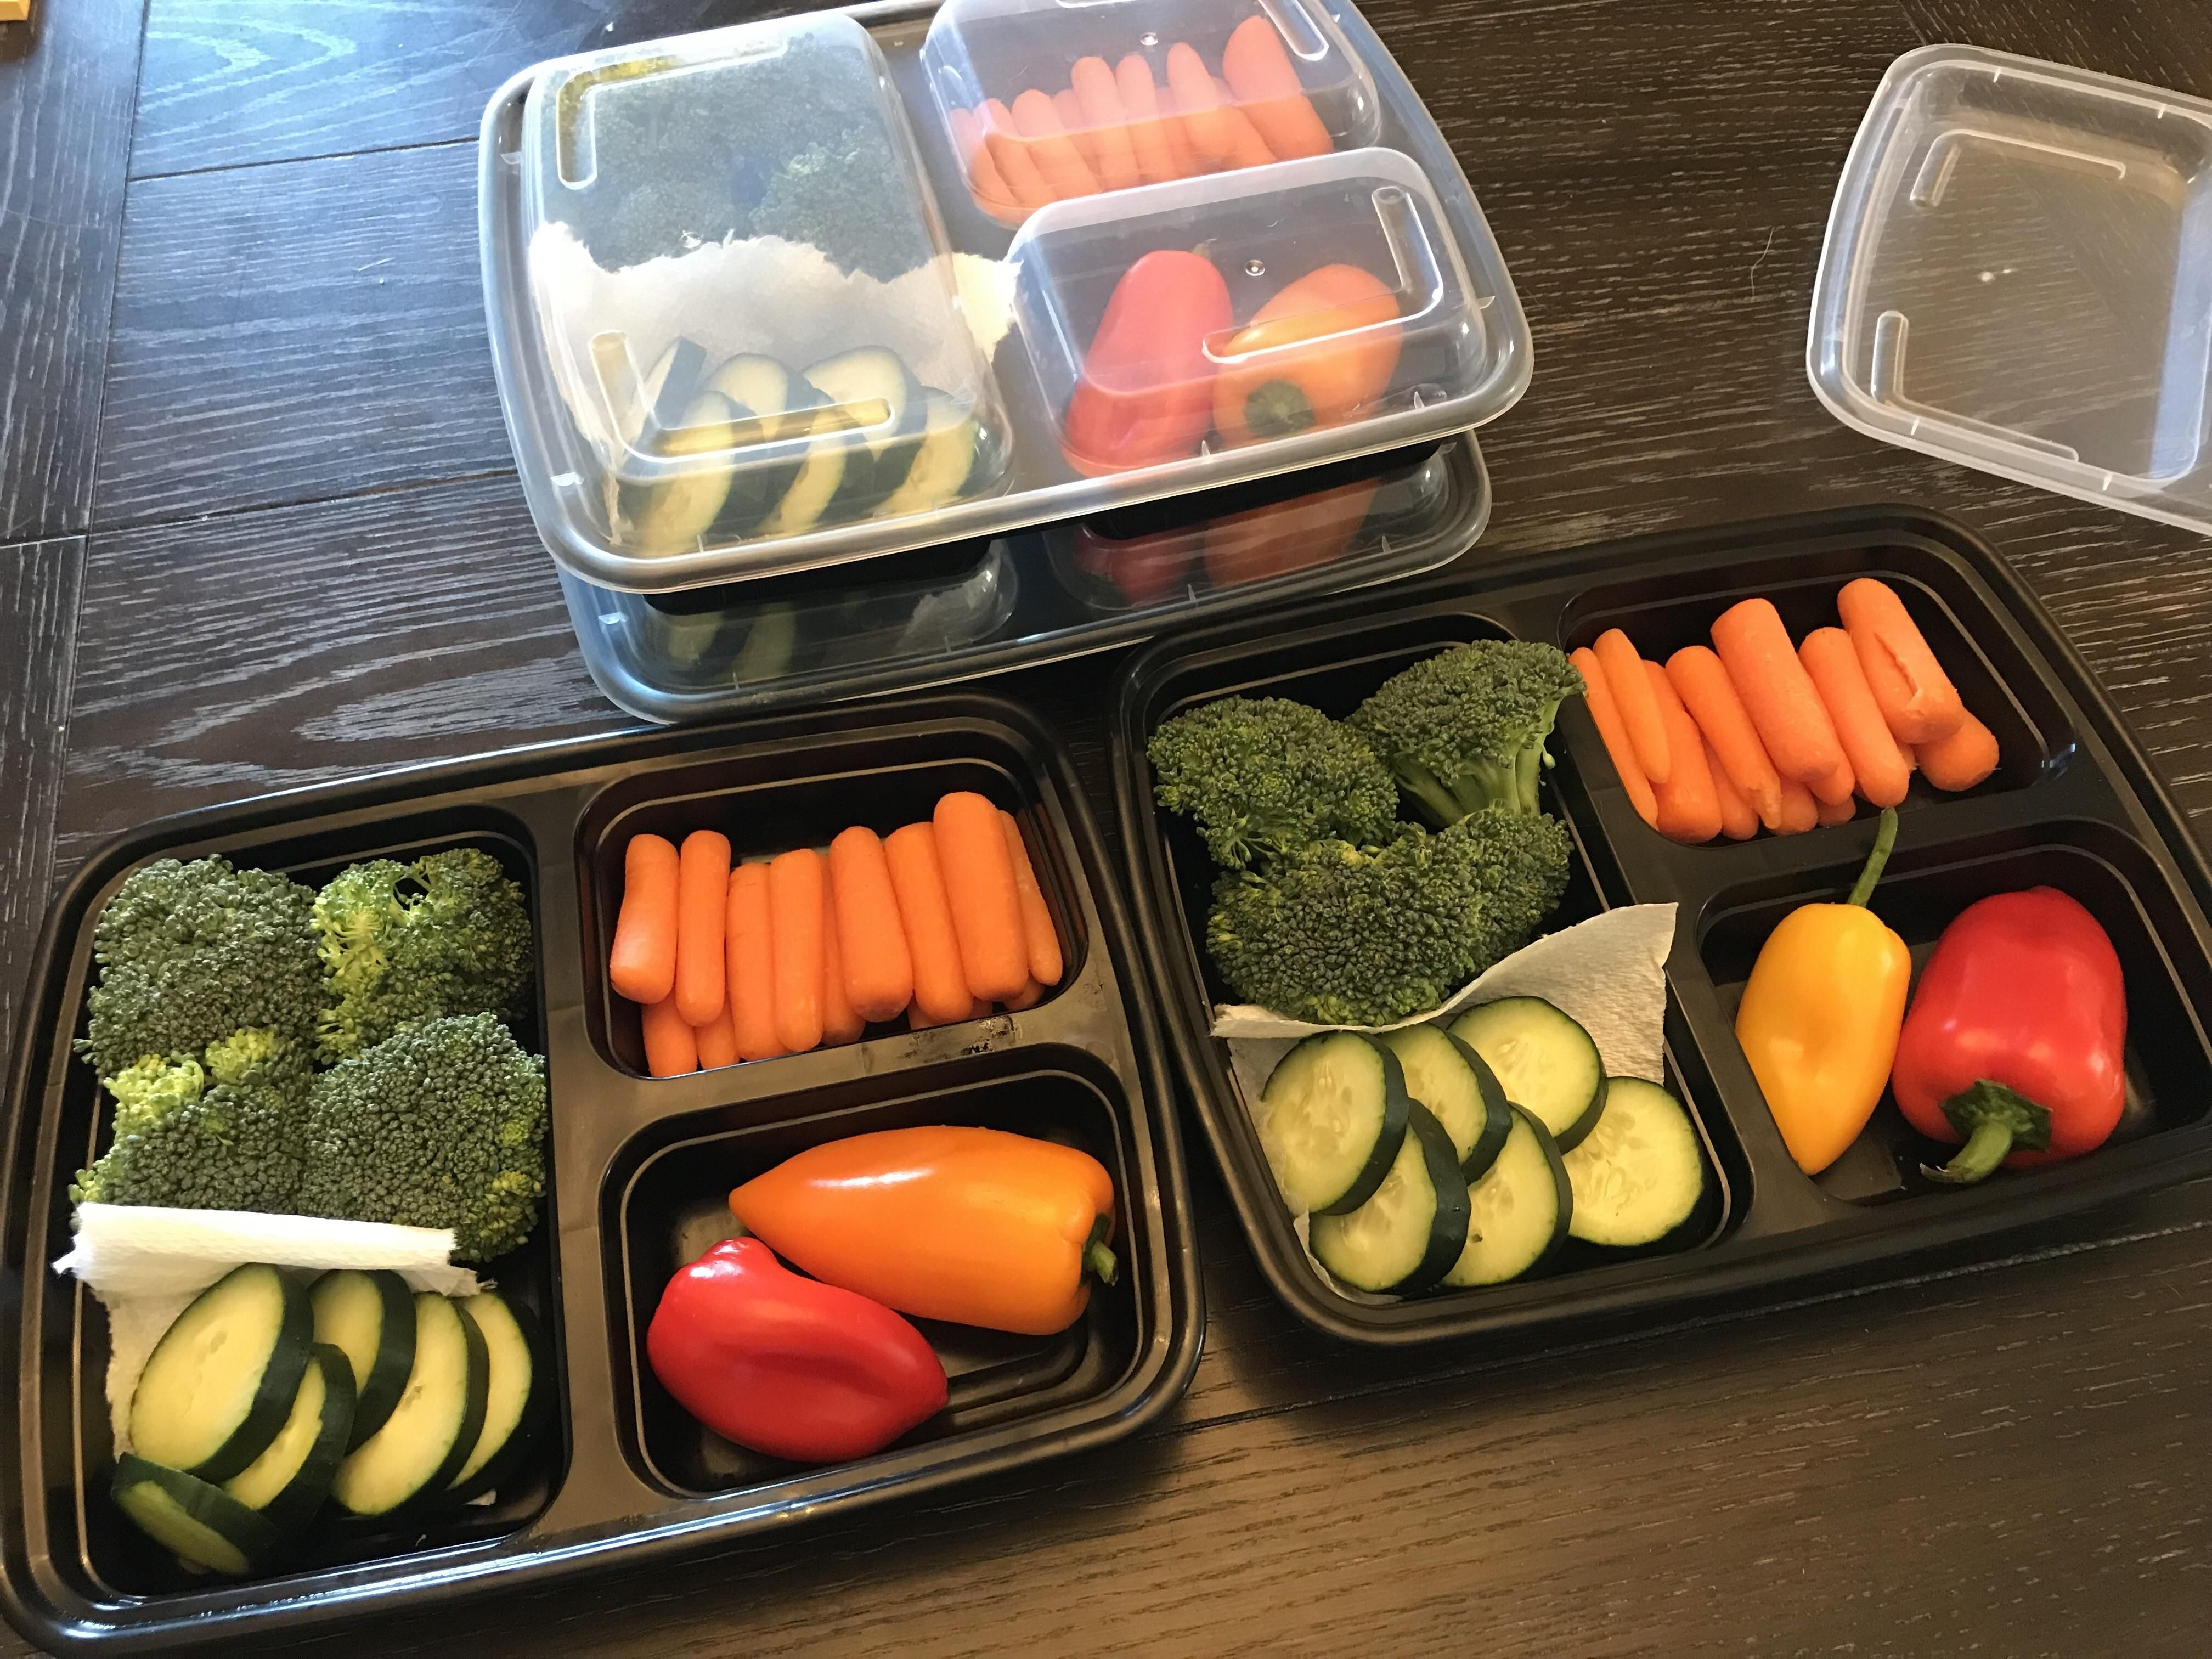 Did some veggie prepping for the girlfriend this week